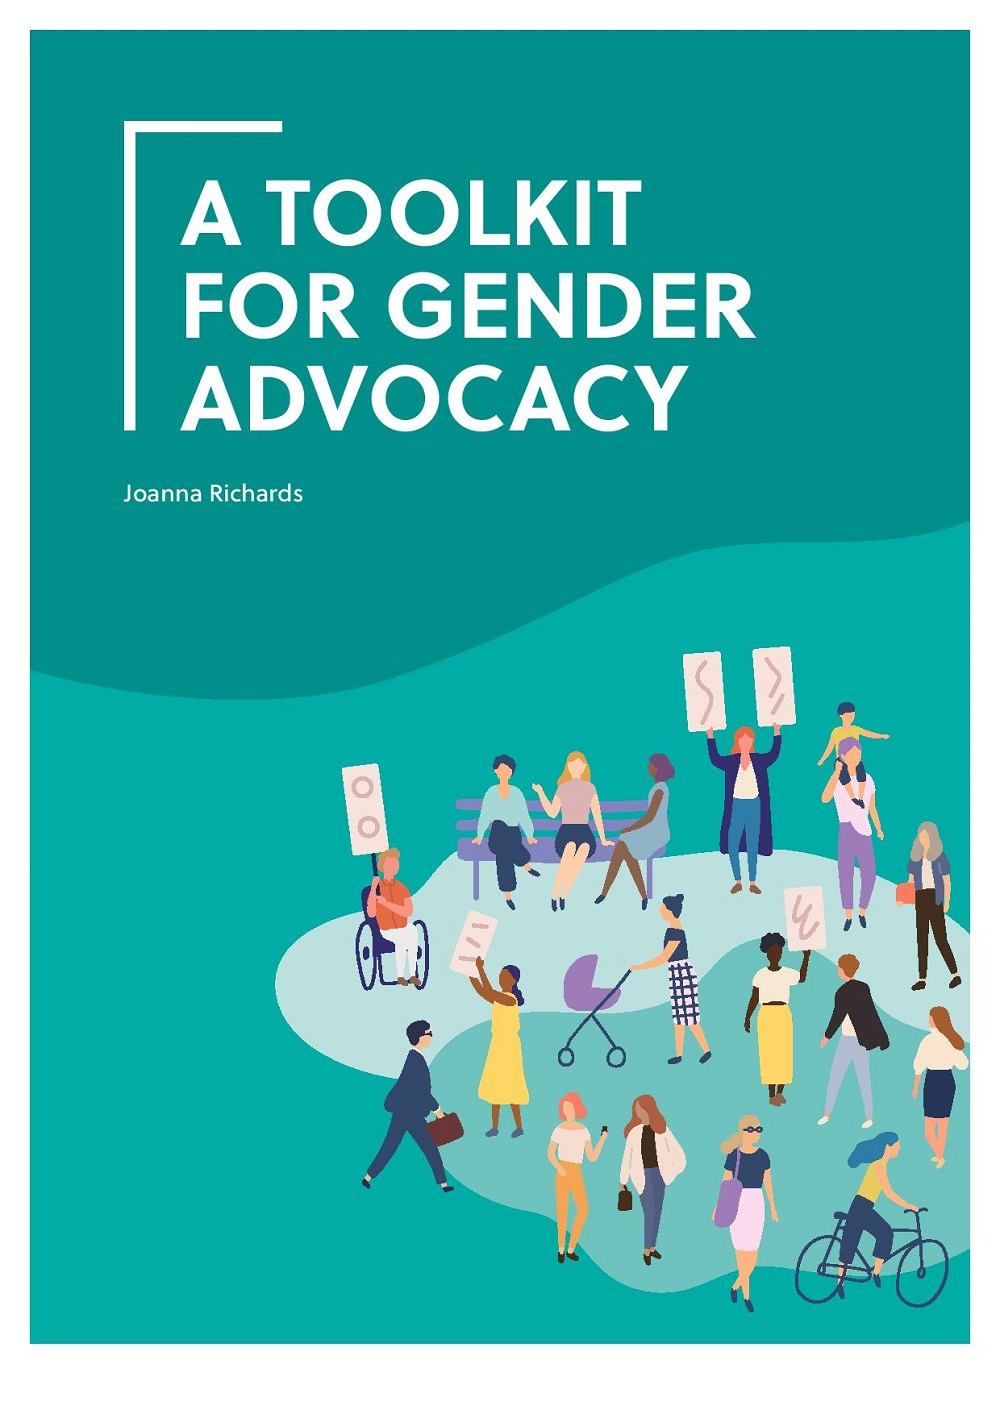 A Toolkit for Gender Advocacy is available to all online. Photo: supplied